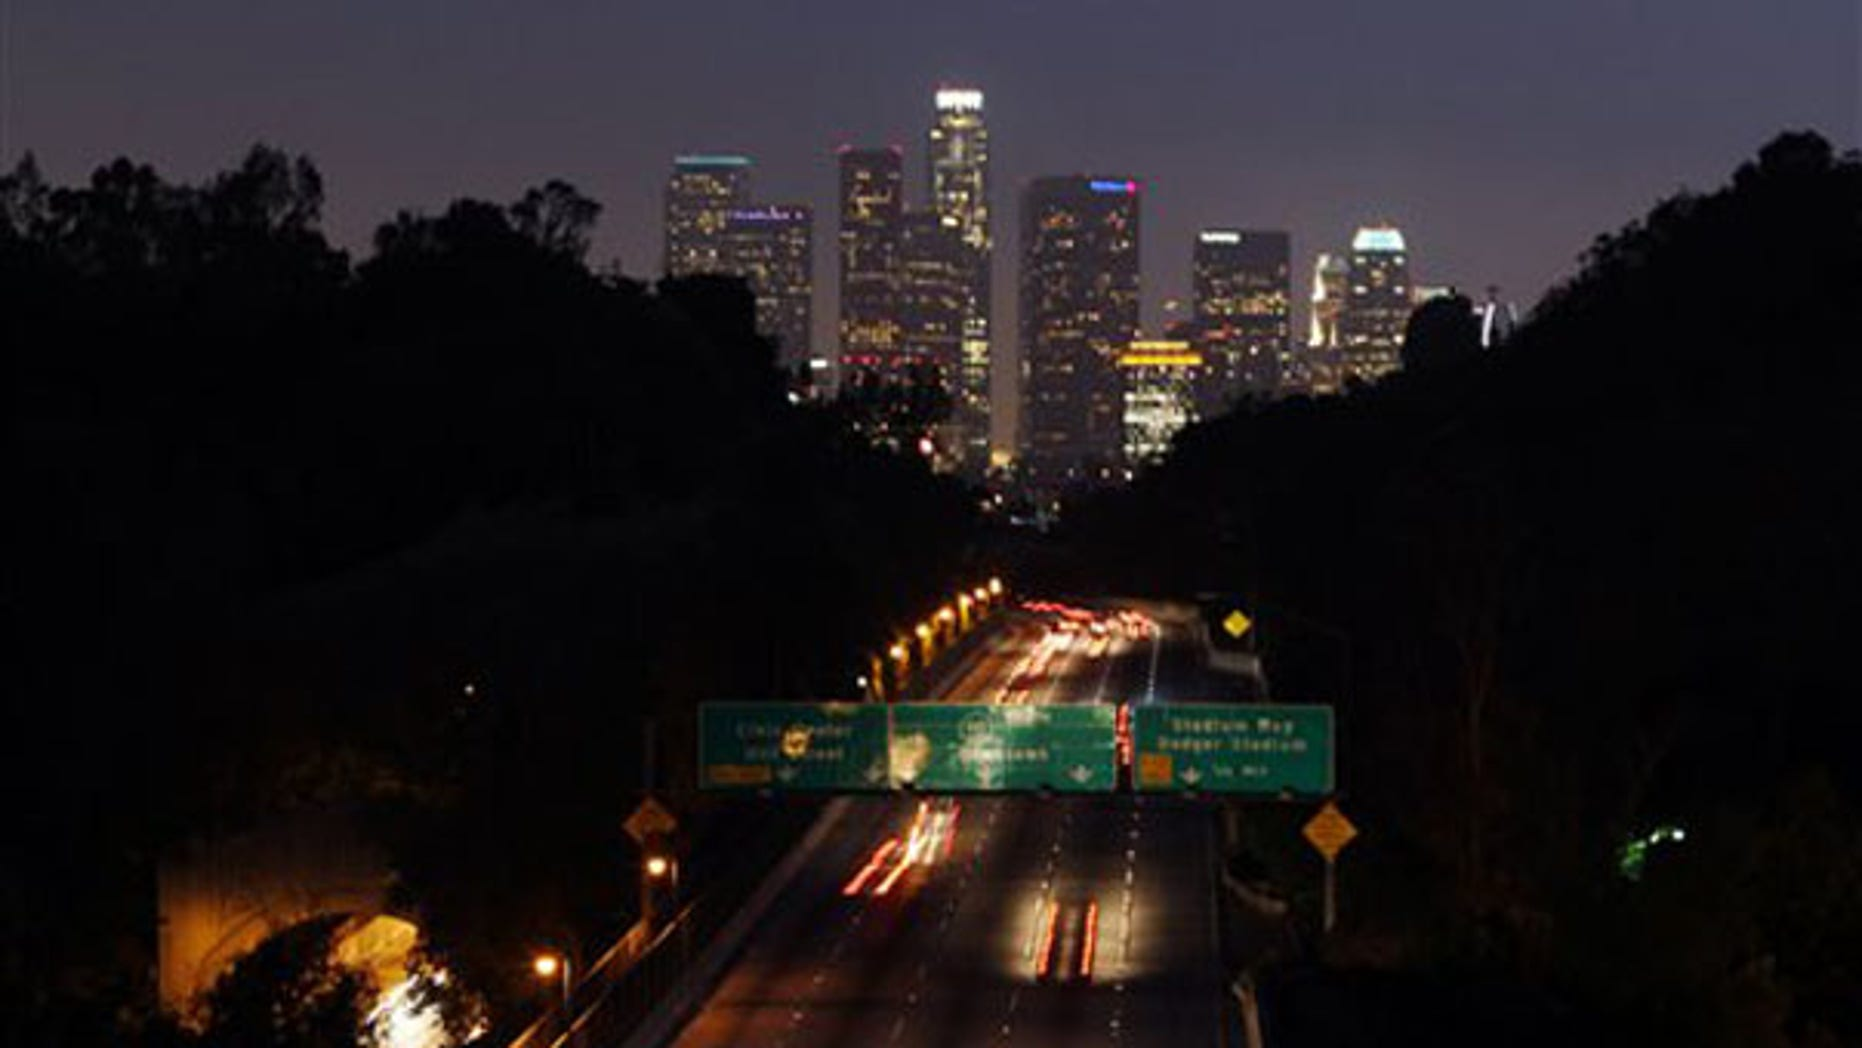 Traffic flows along the Pasadena Freeway May 14 in Los Angeles. (AP Photo)